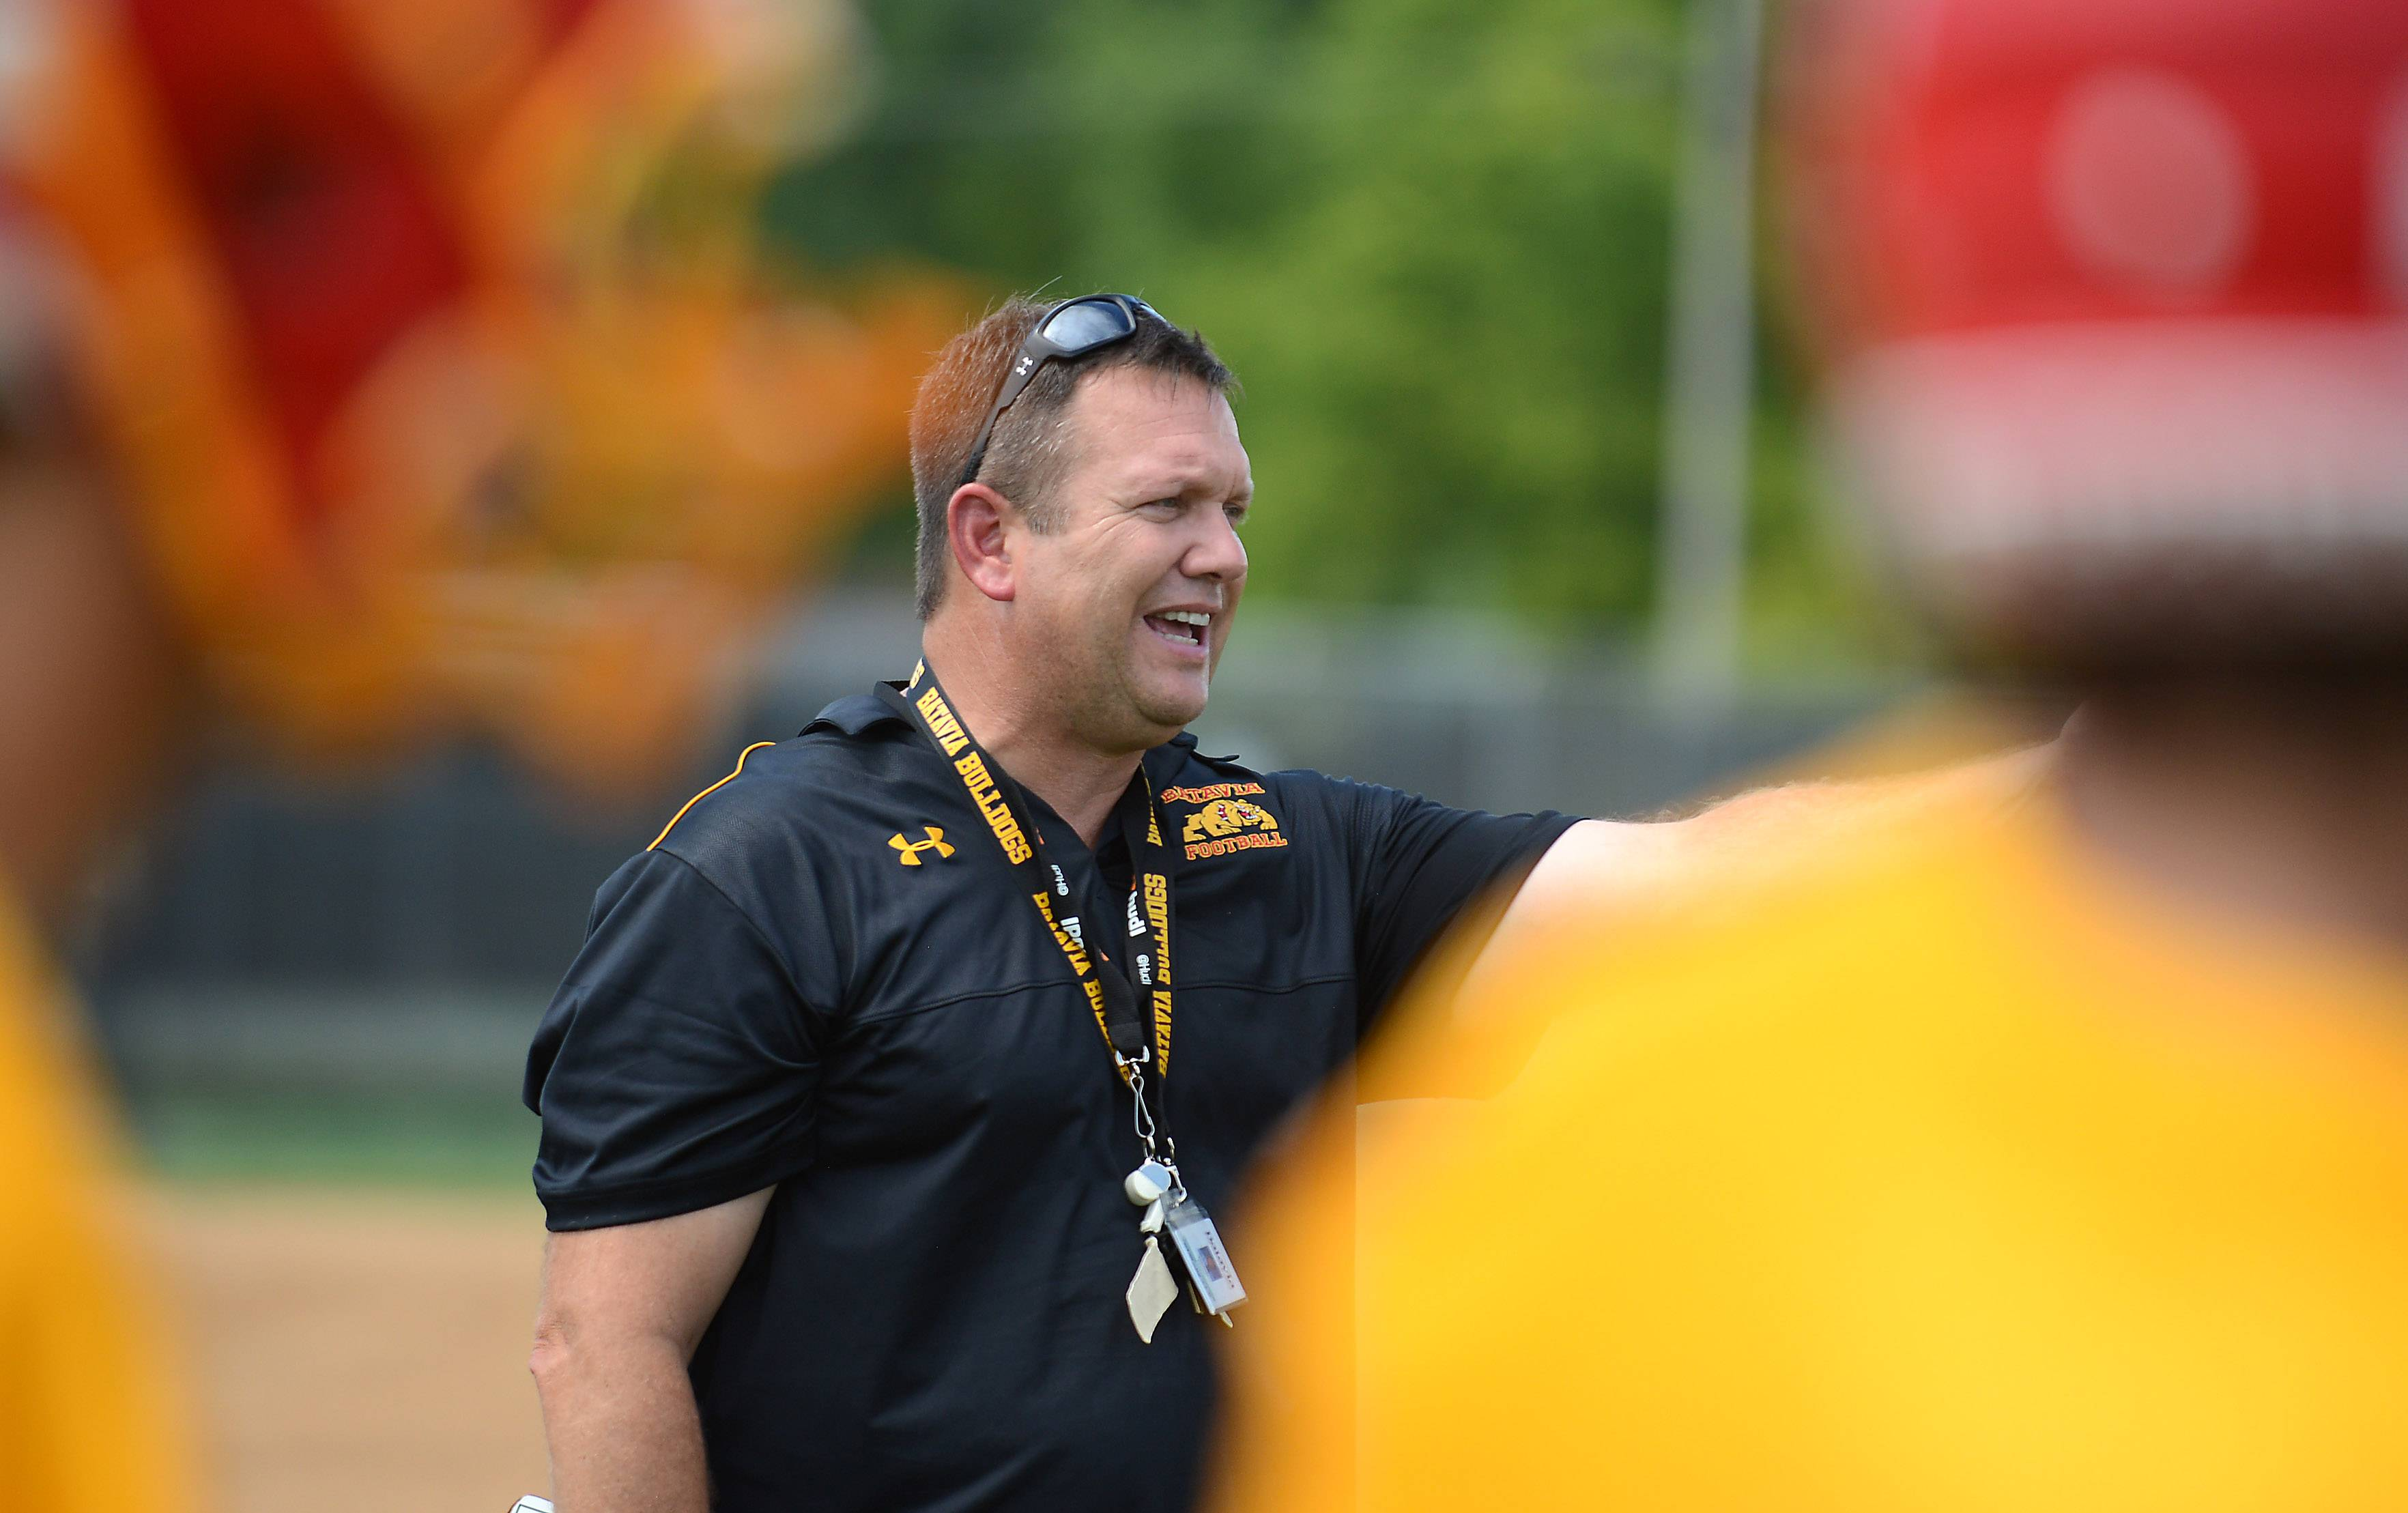 Batavia head coach Dennis Piron says his school should make its own decision and not be influenced by others when it comes to potentially leaving the Upstate Eight Conference.